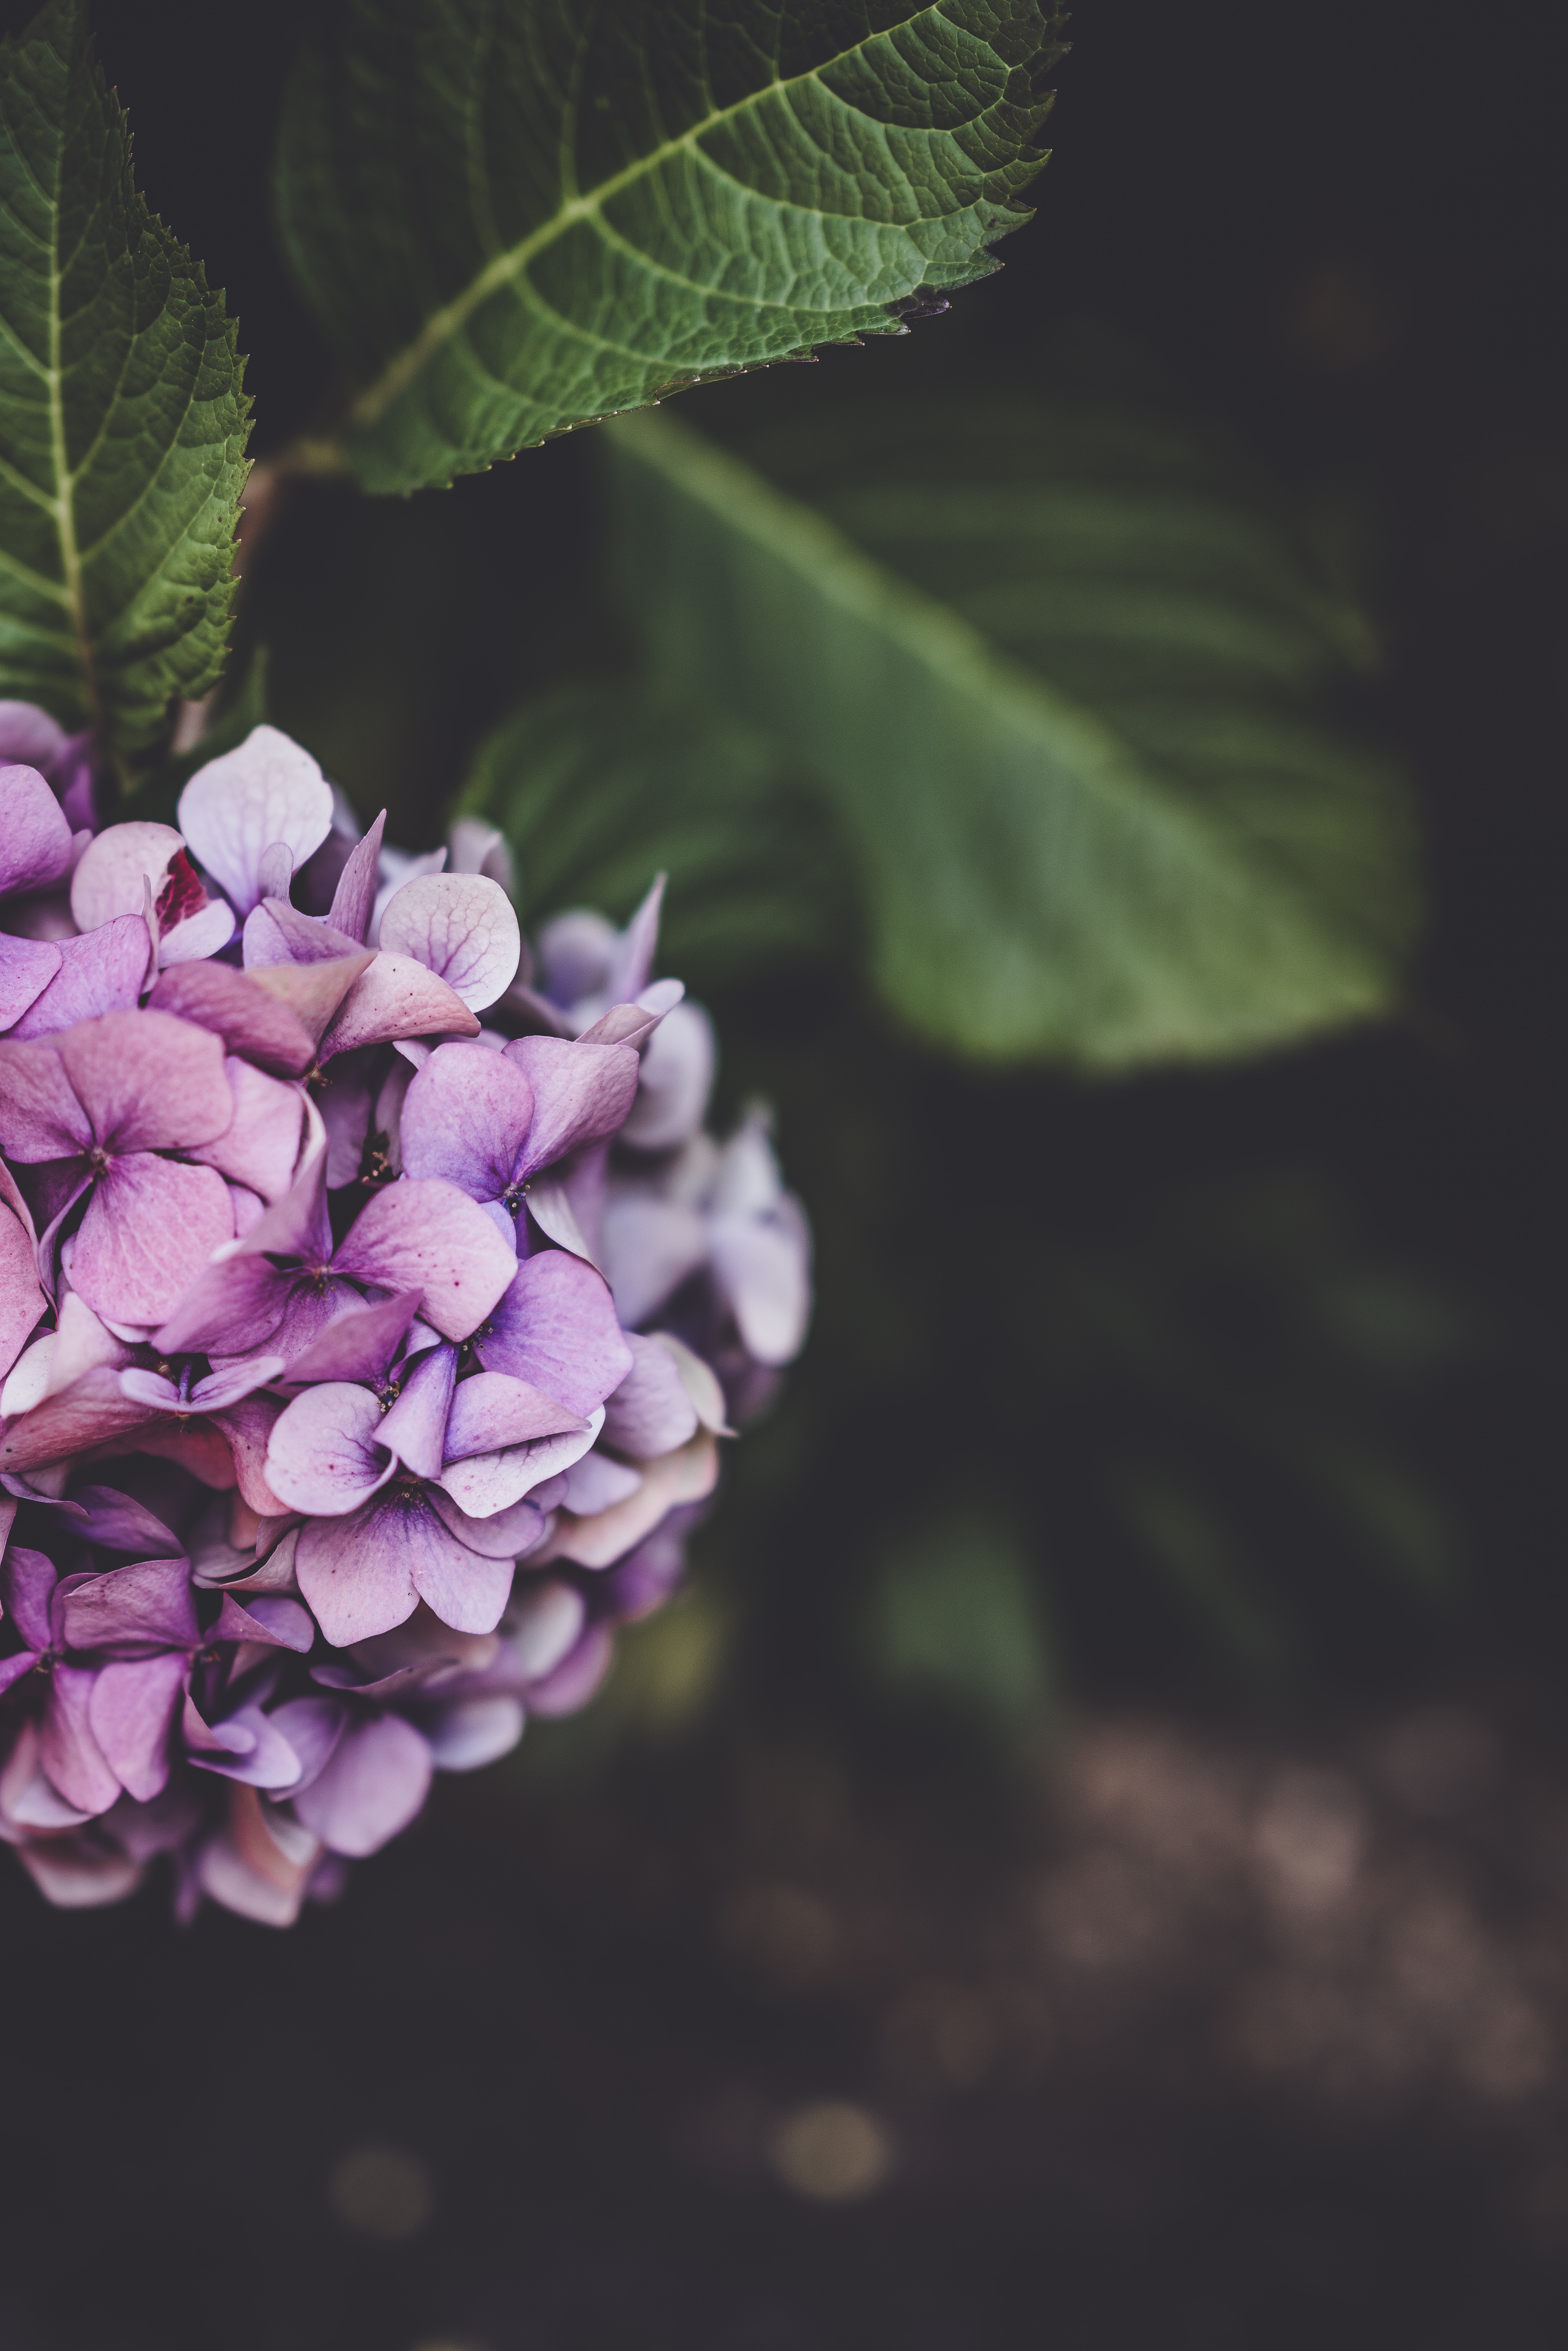 selective focus photography of purple-and-white petaled flowers